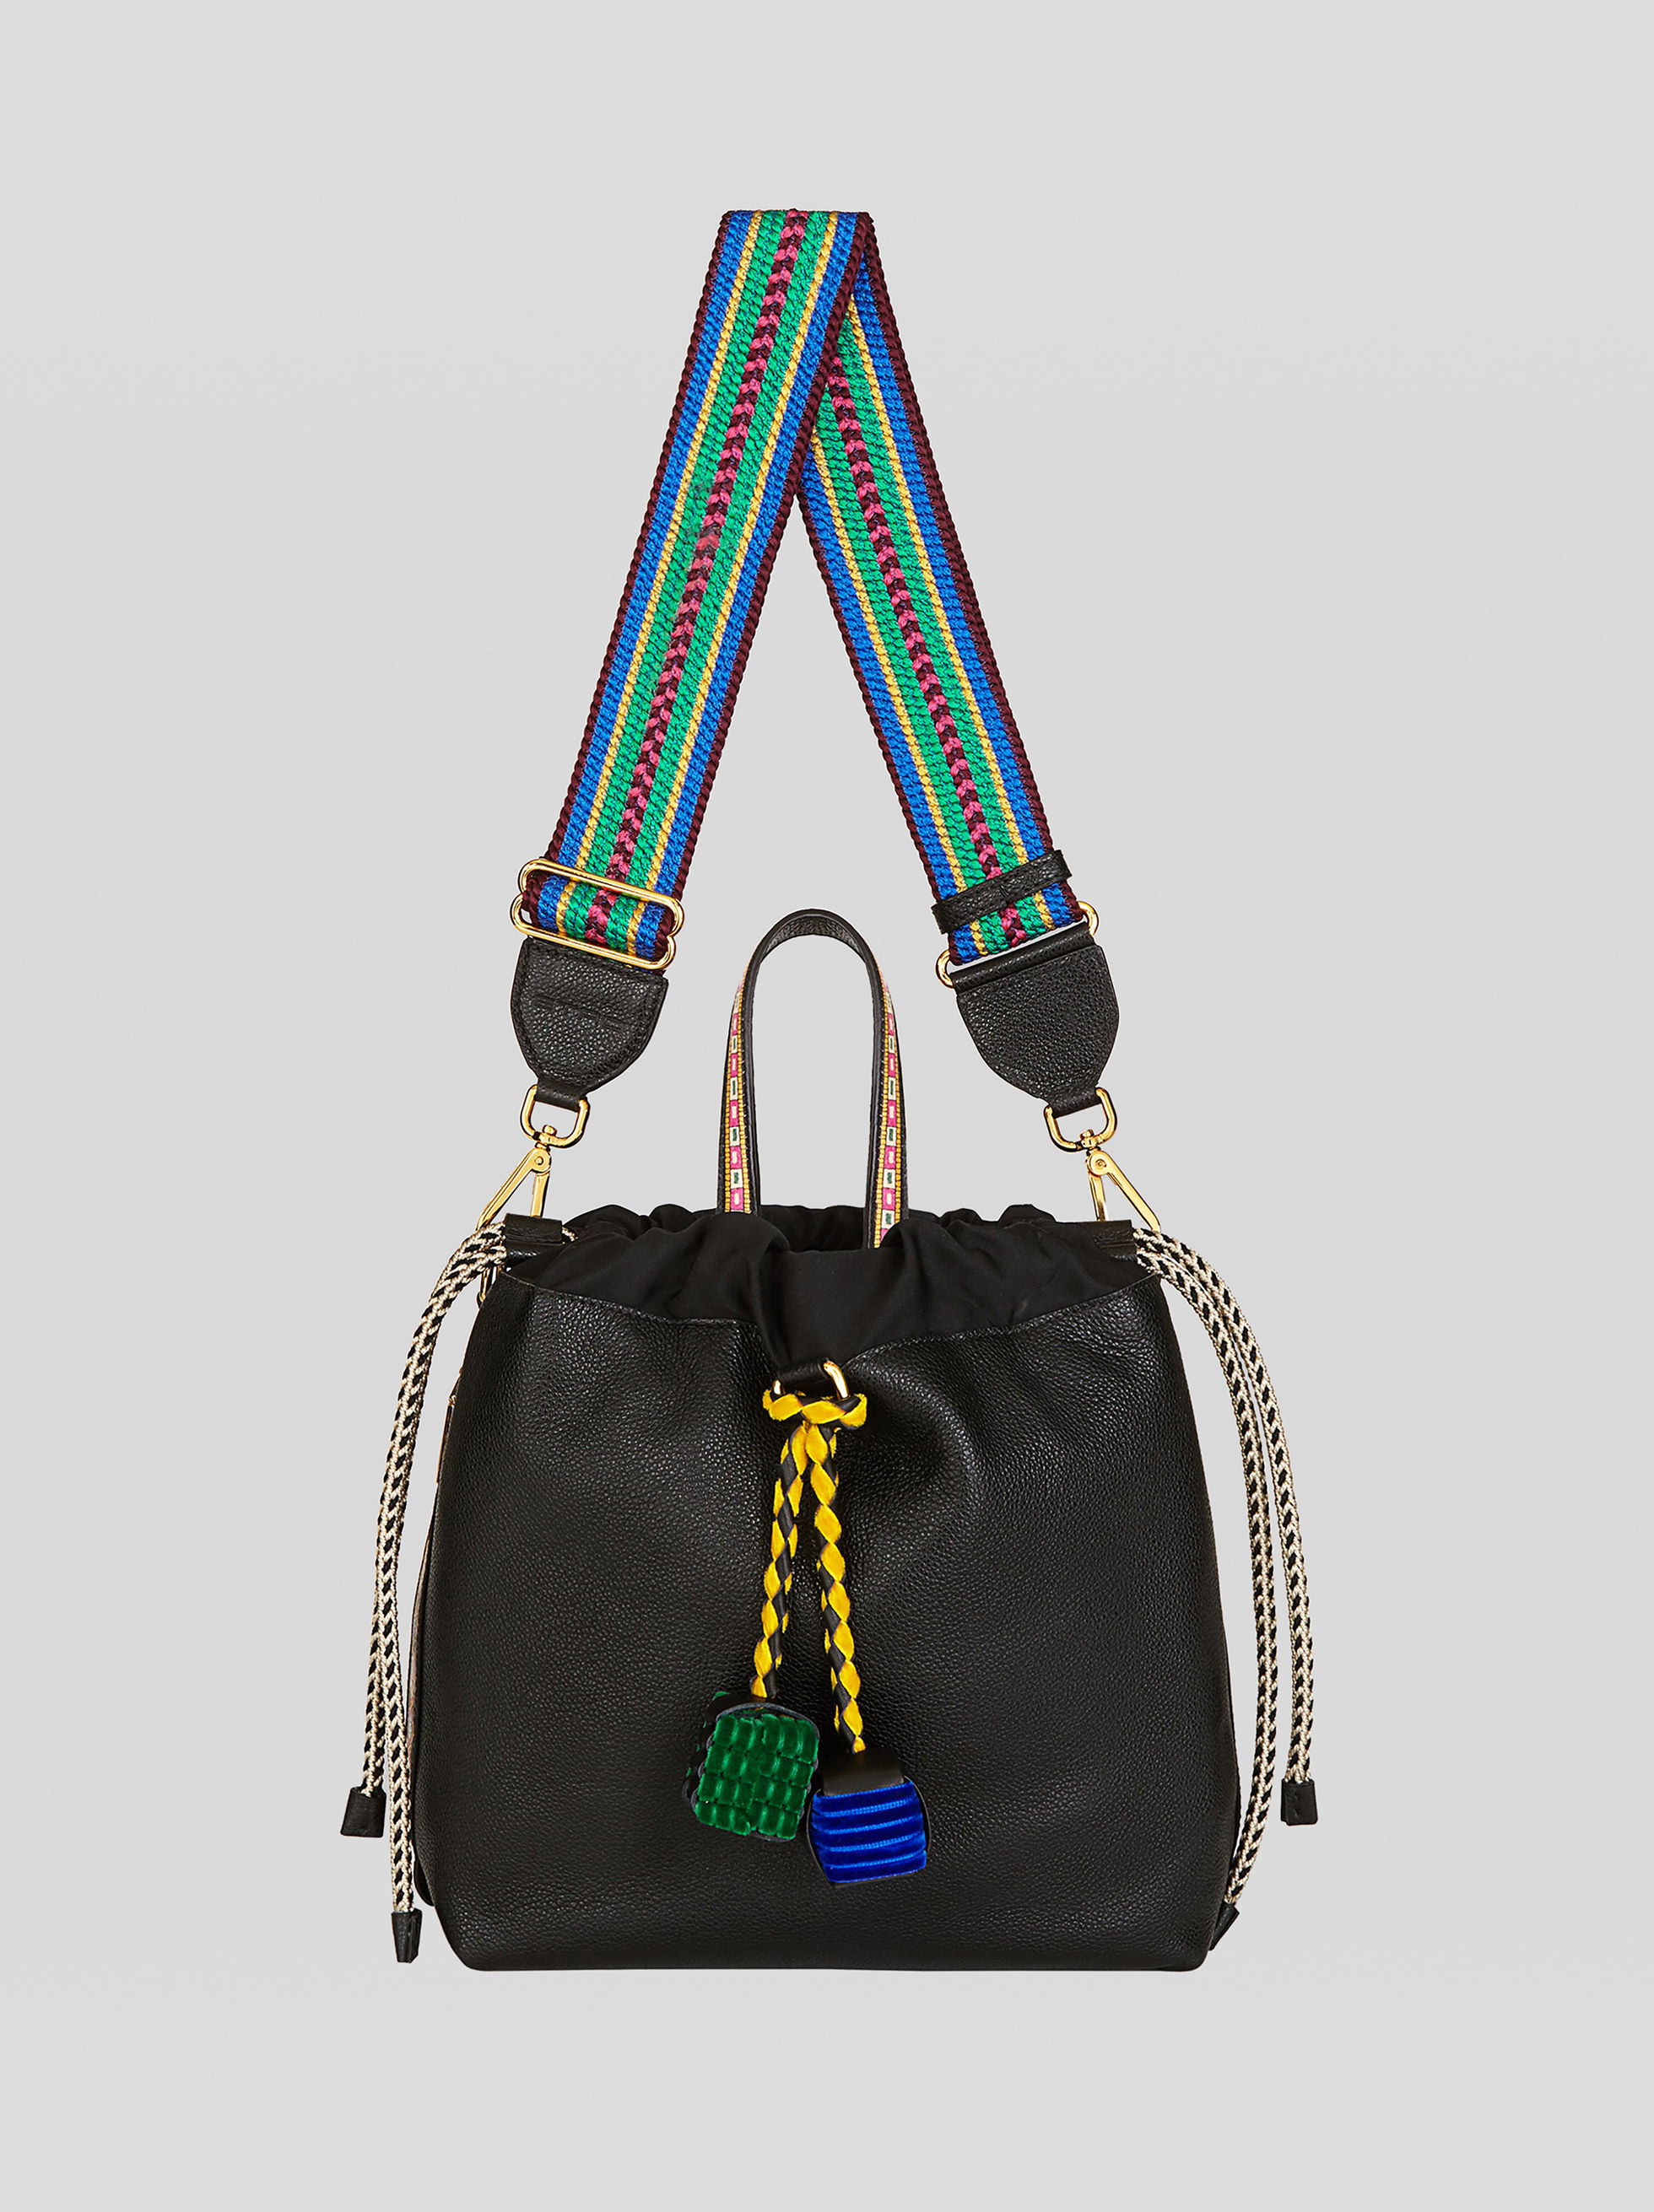 ETRO SAC SHOPPER